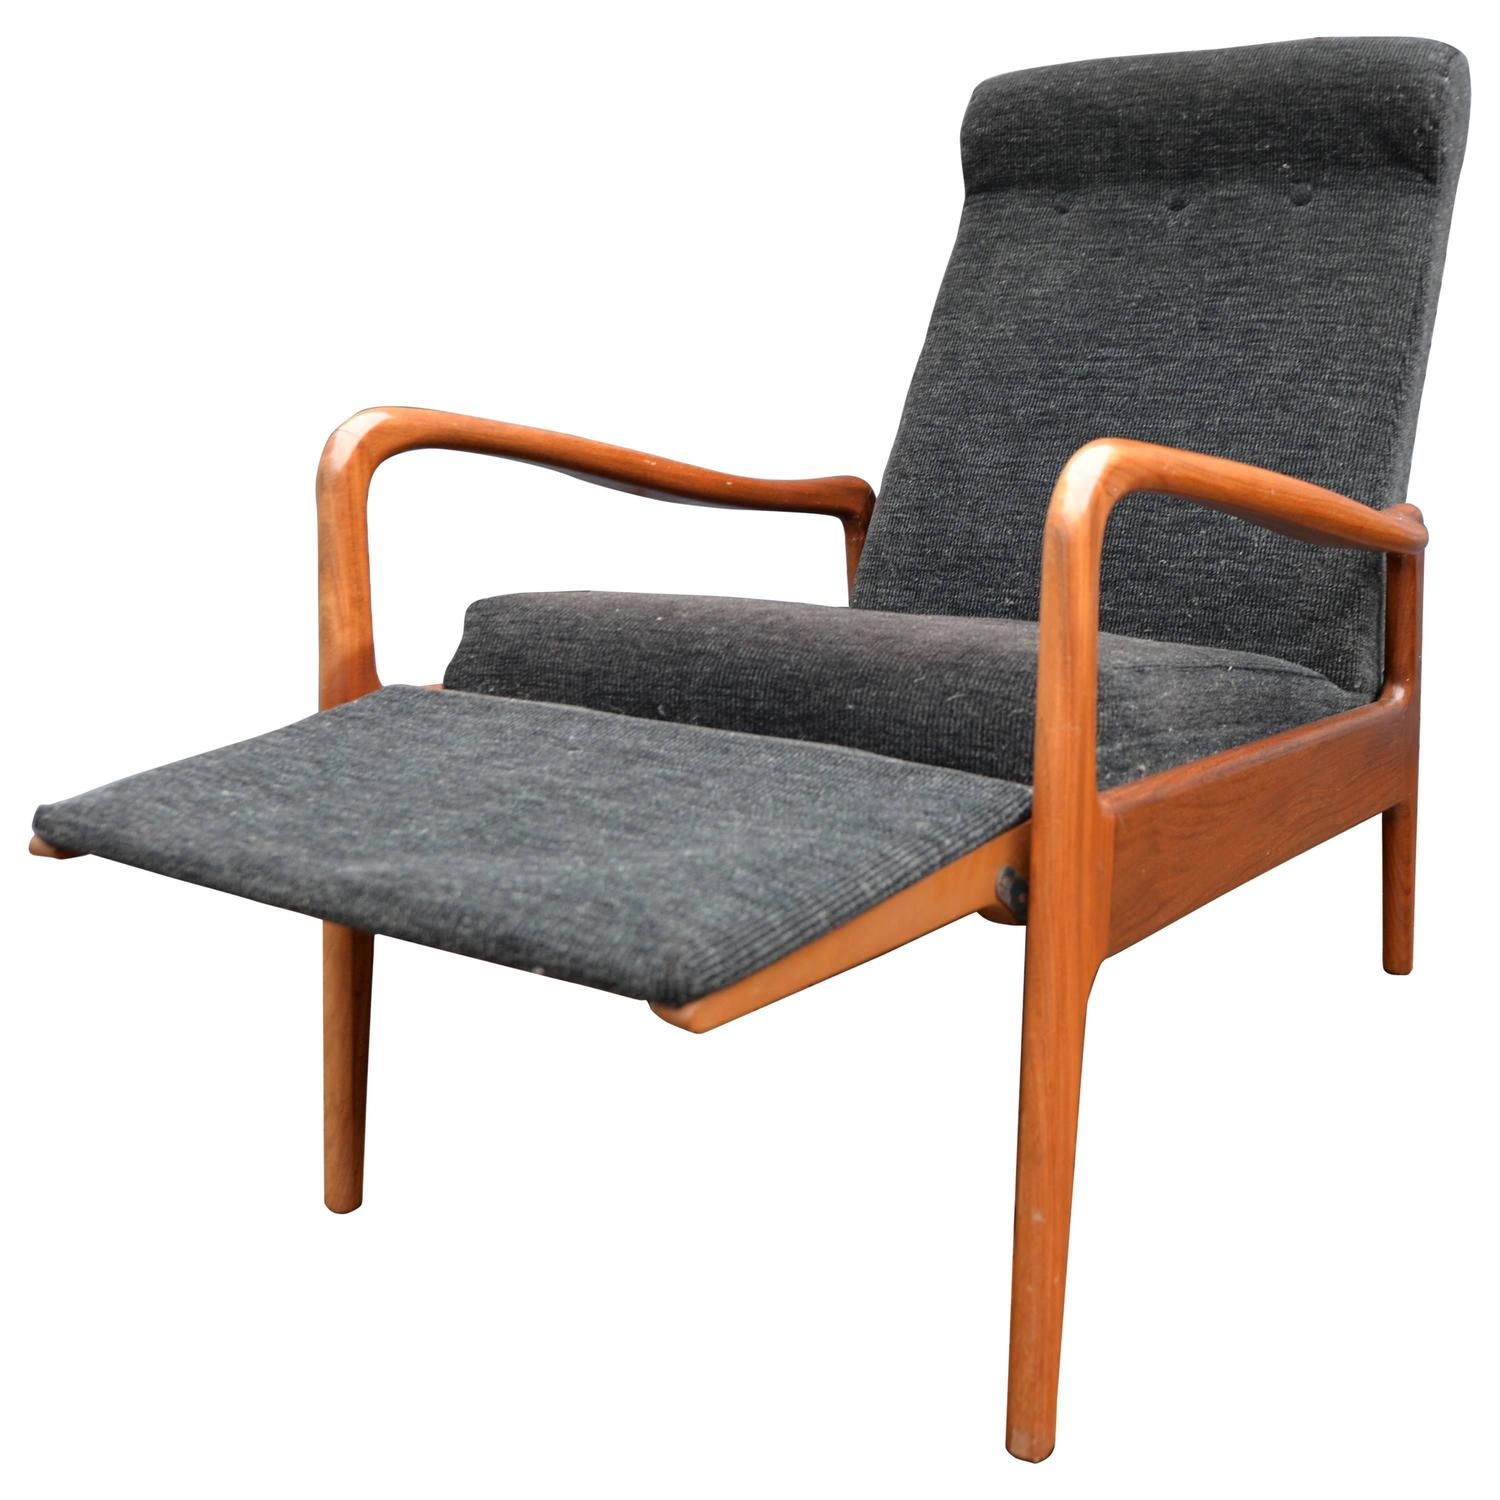 1960s English Recliner Chair By Greaves And Thomas Danish